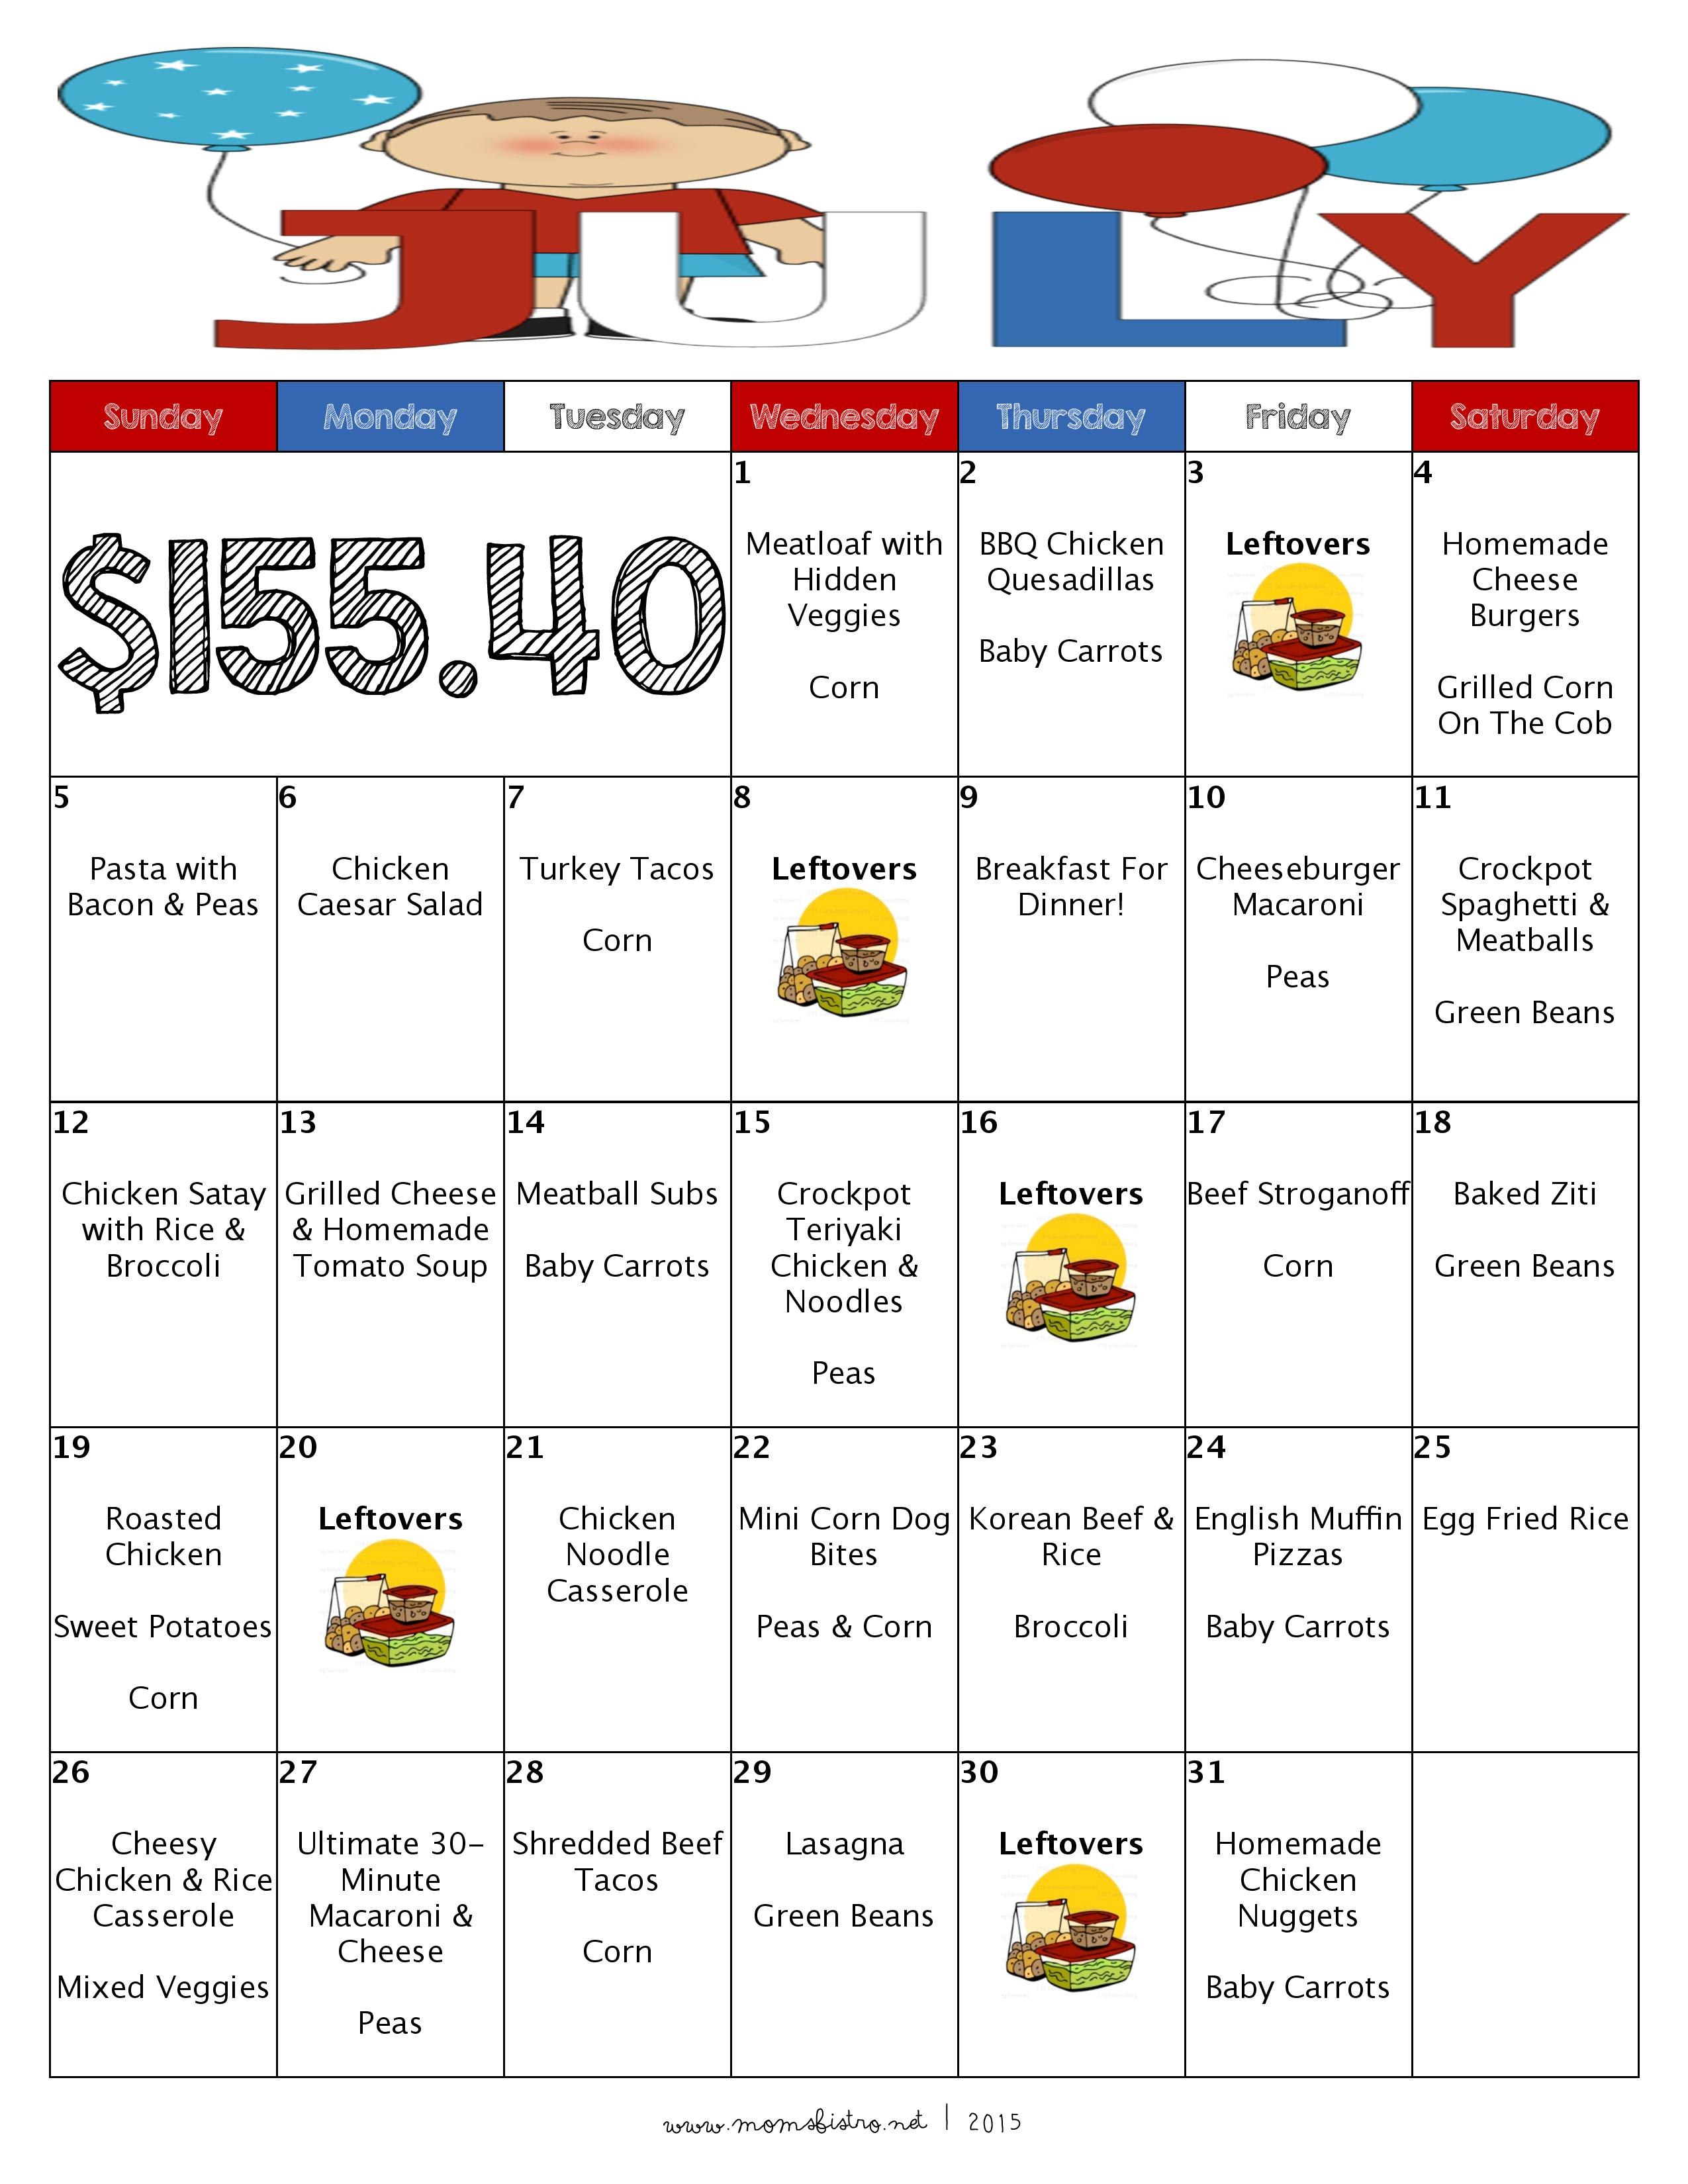 A Month Of Meals On A Budget | July 2015 Meal Plan | 31 Days of No Repeat, Kid-Friendly Dinners for $155 with FREE Printable Grocery List and Recipes